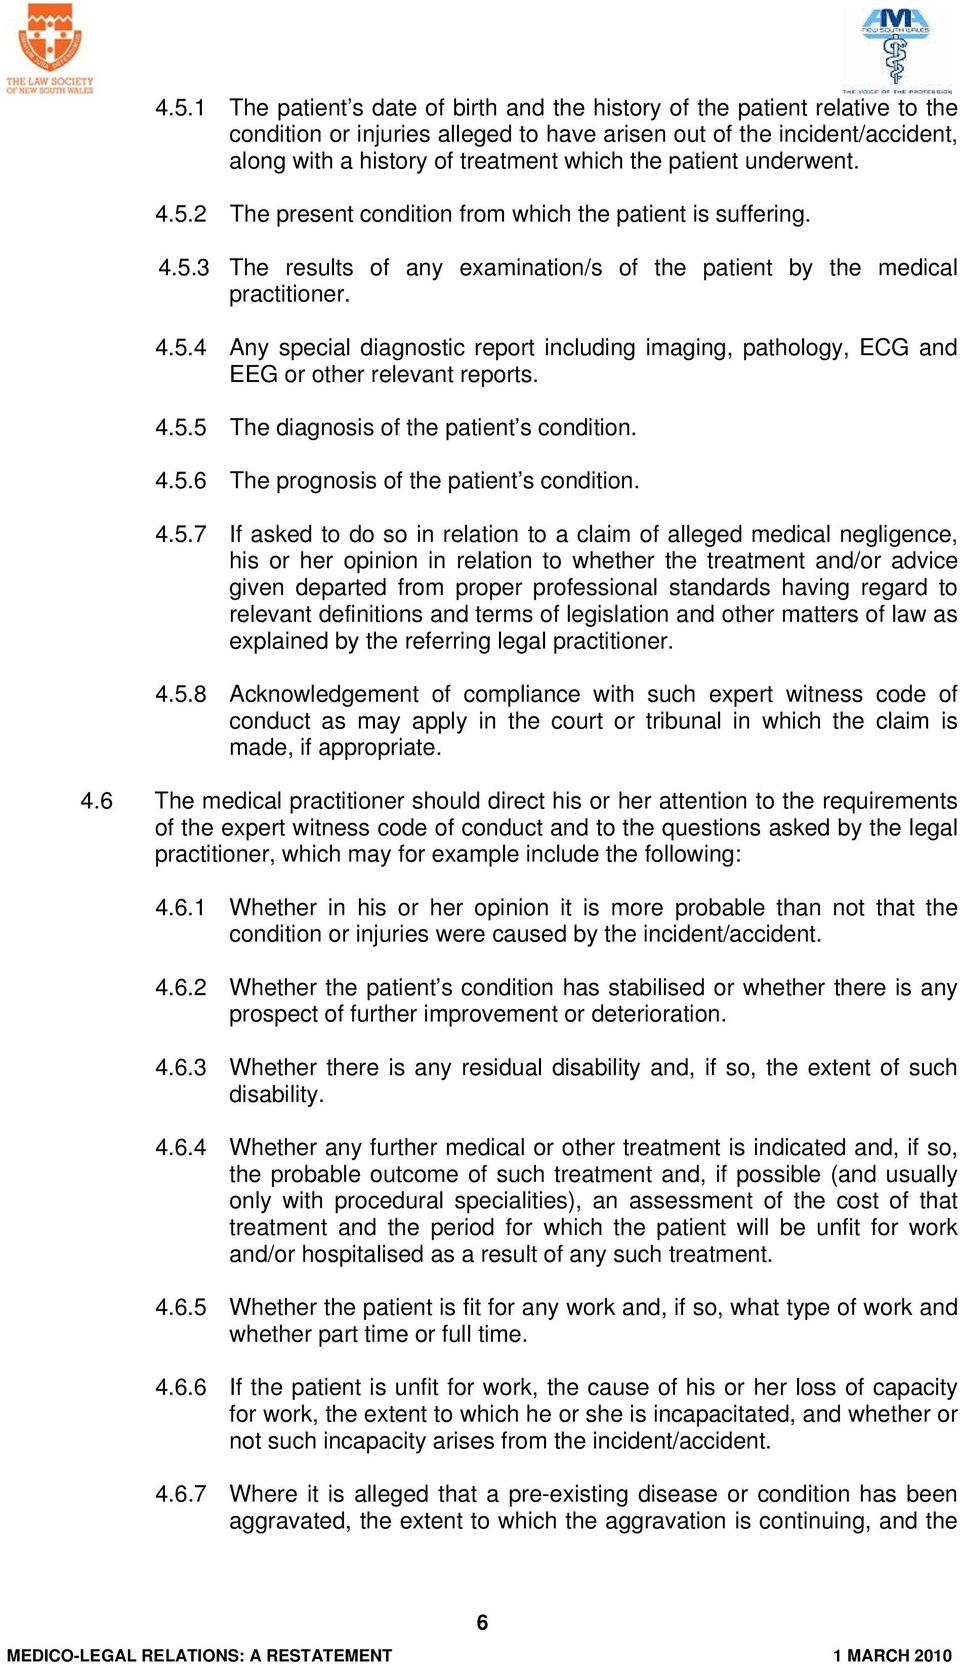 4.5.5 The diagnosis of the patient s condition. 4.5.6 The prognosis of the patient s condition. 4.5.7 If asked to do so in relation to a claim of alleged medical negligence, his or her opinion in